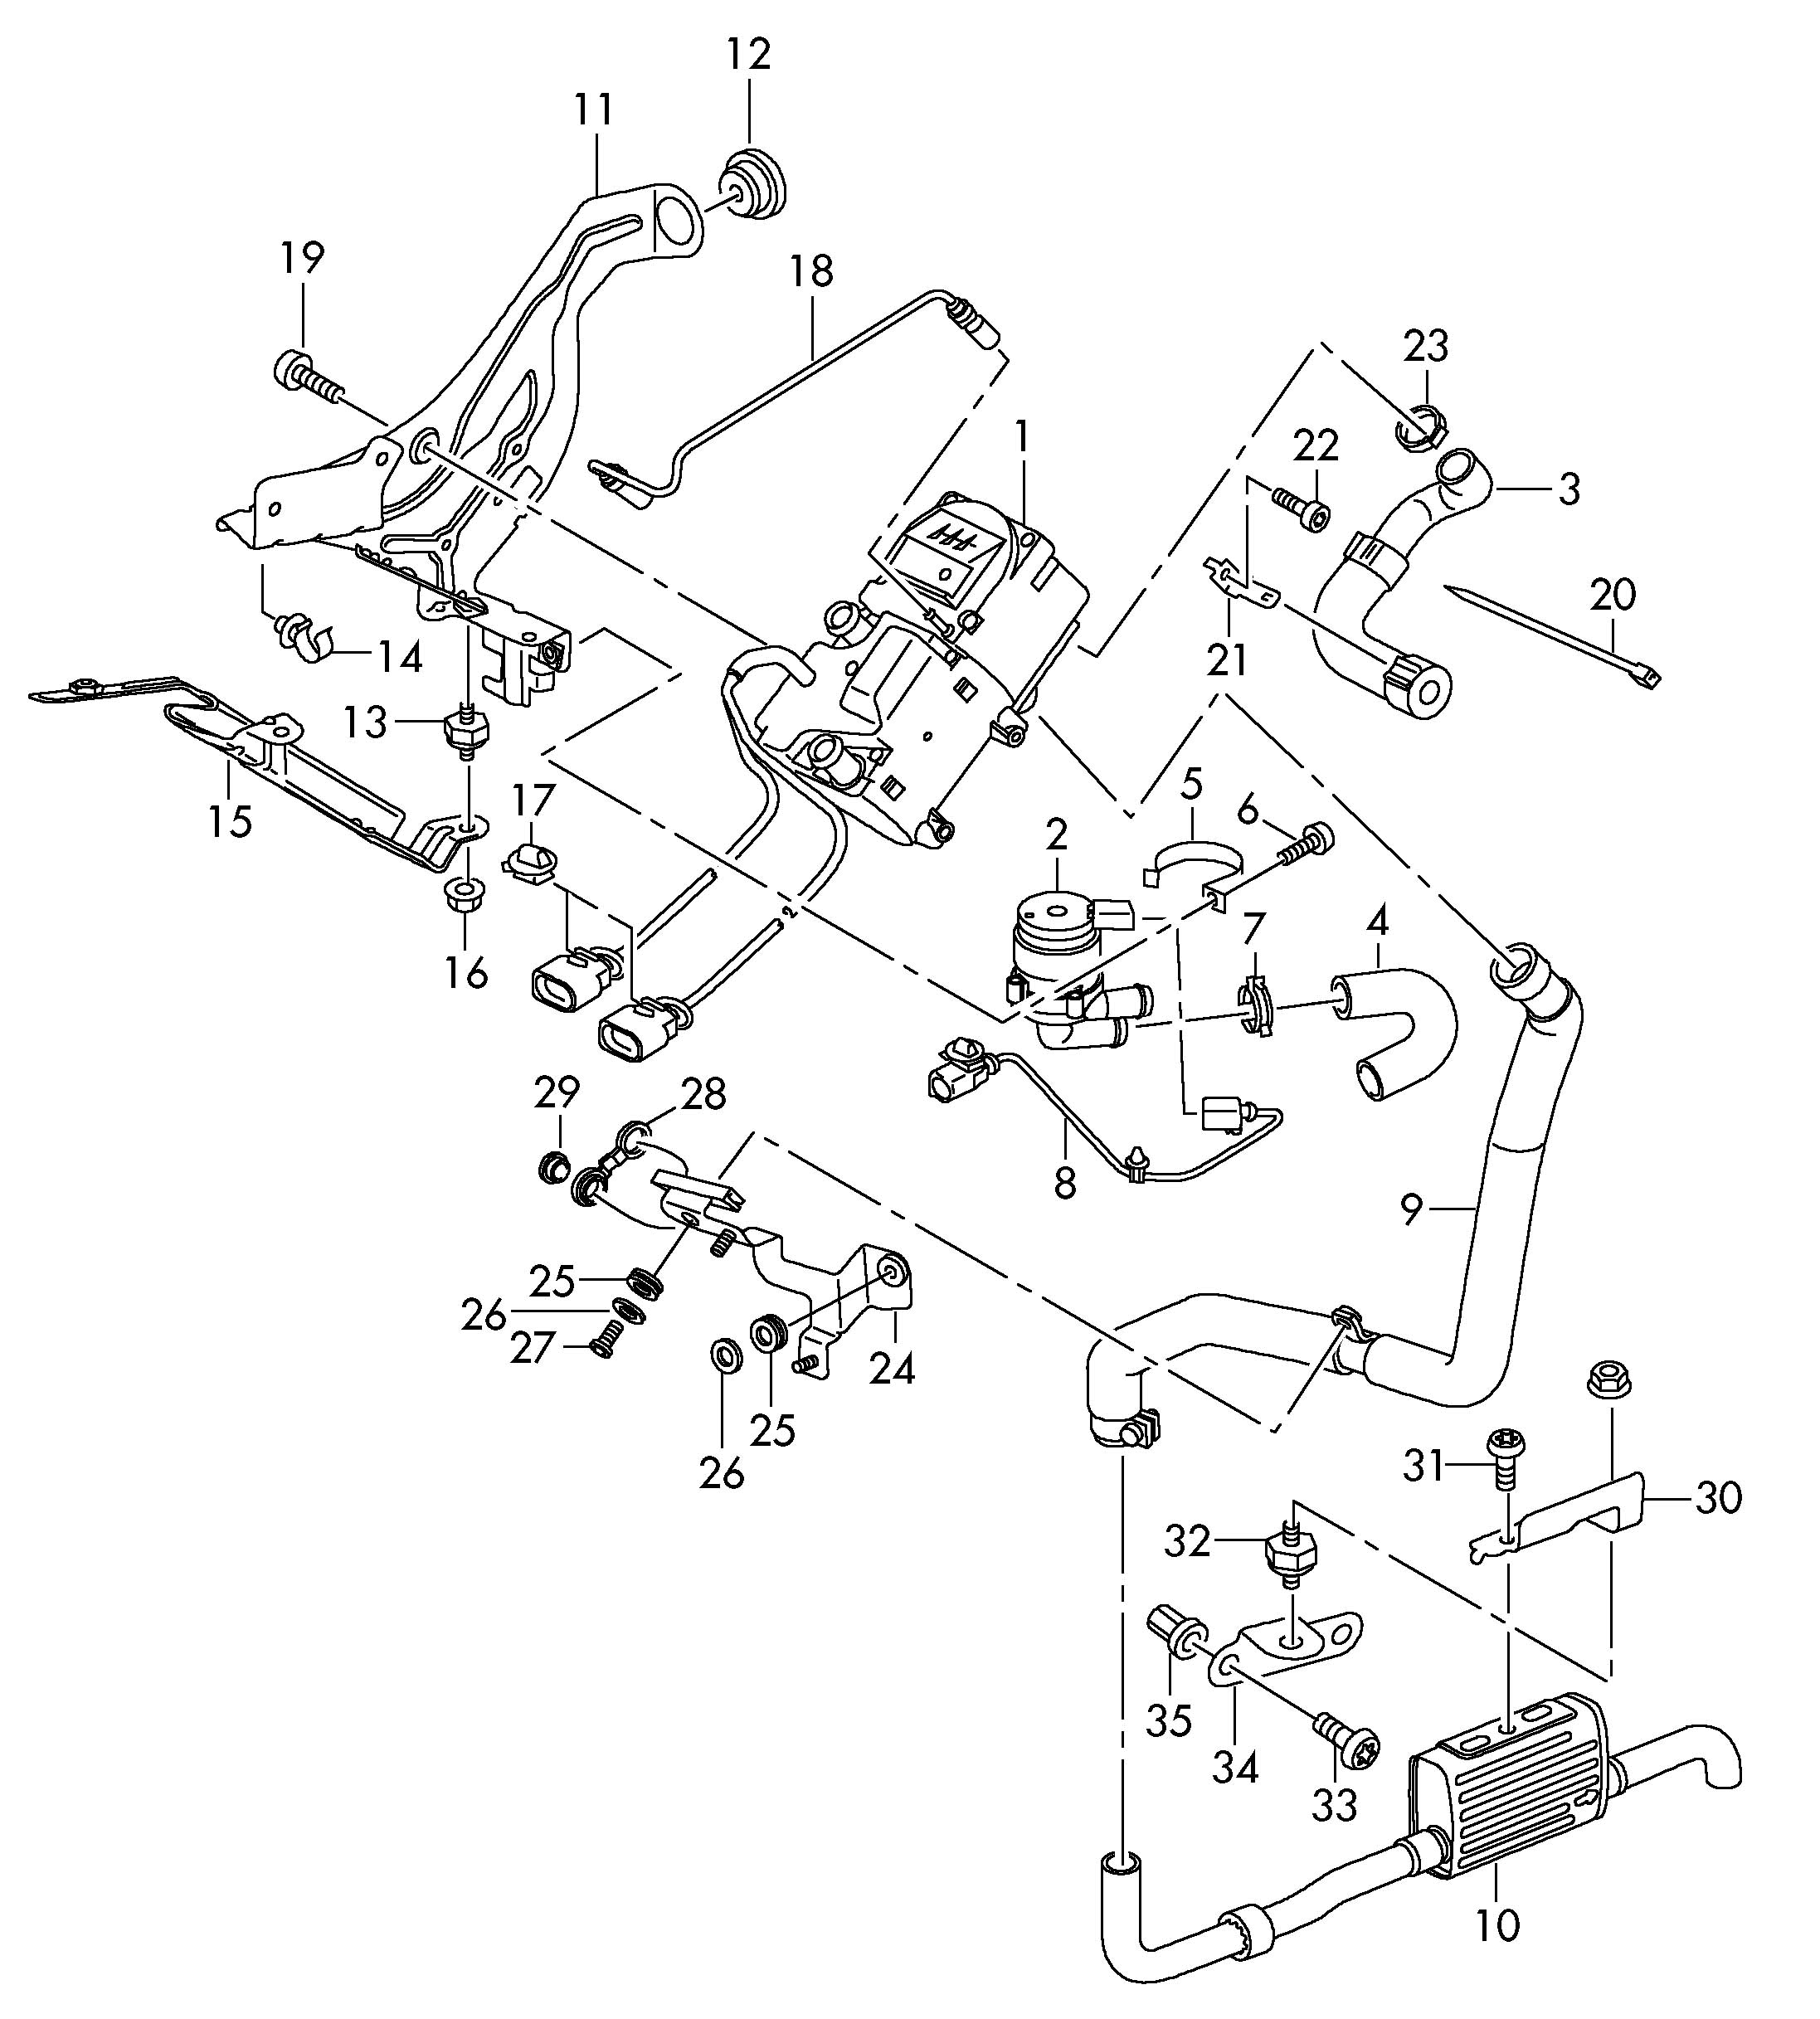 Volkswagen Touareg Additional Heater For Circuit Stationary Heater For Circuit Bracket